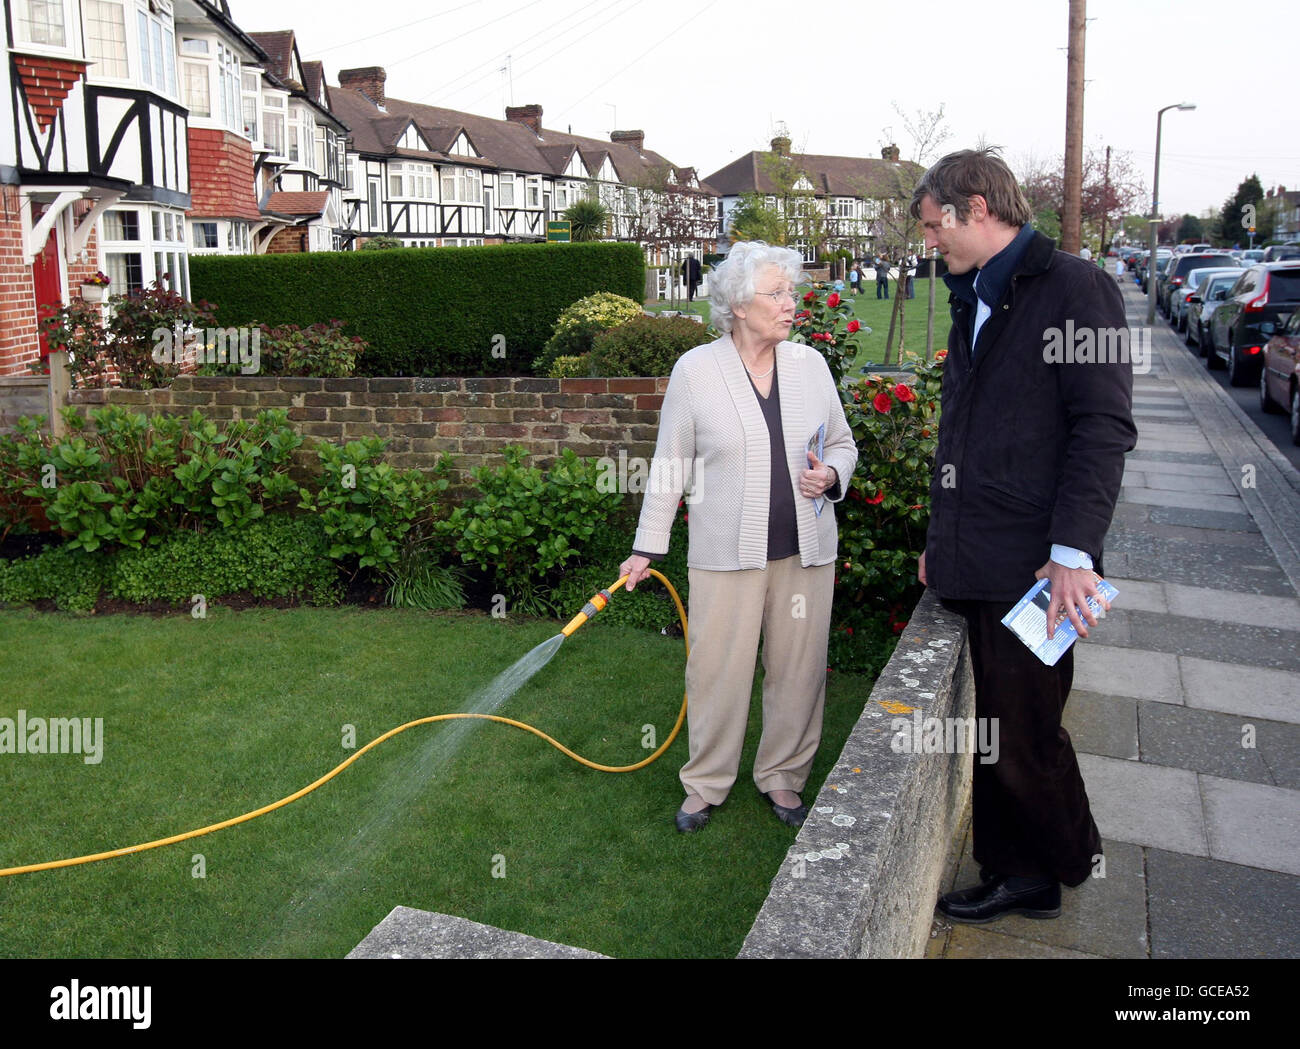 2010 General Election campaign Apr 19th - Stock Image